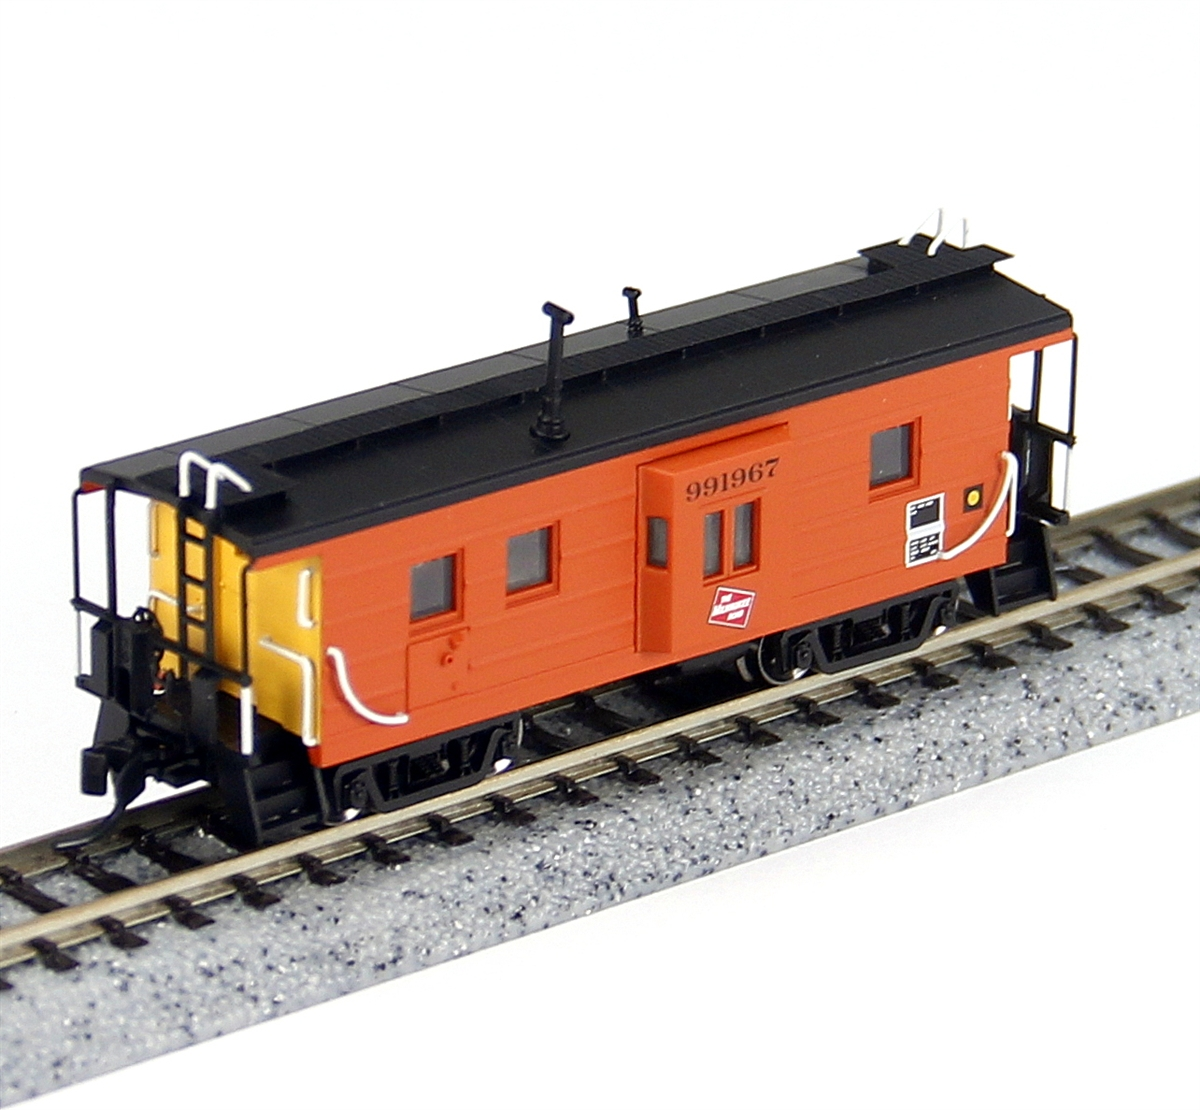 N Scale - Fox Valley - 91019 - Caboose, Bay Window - Milwaukee Road - 991967